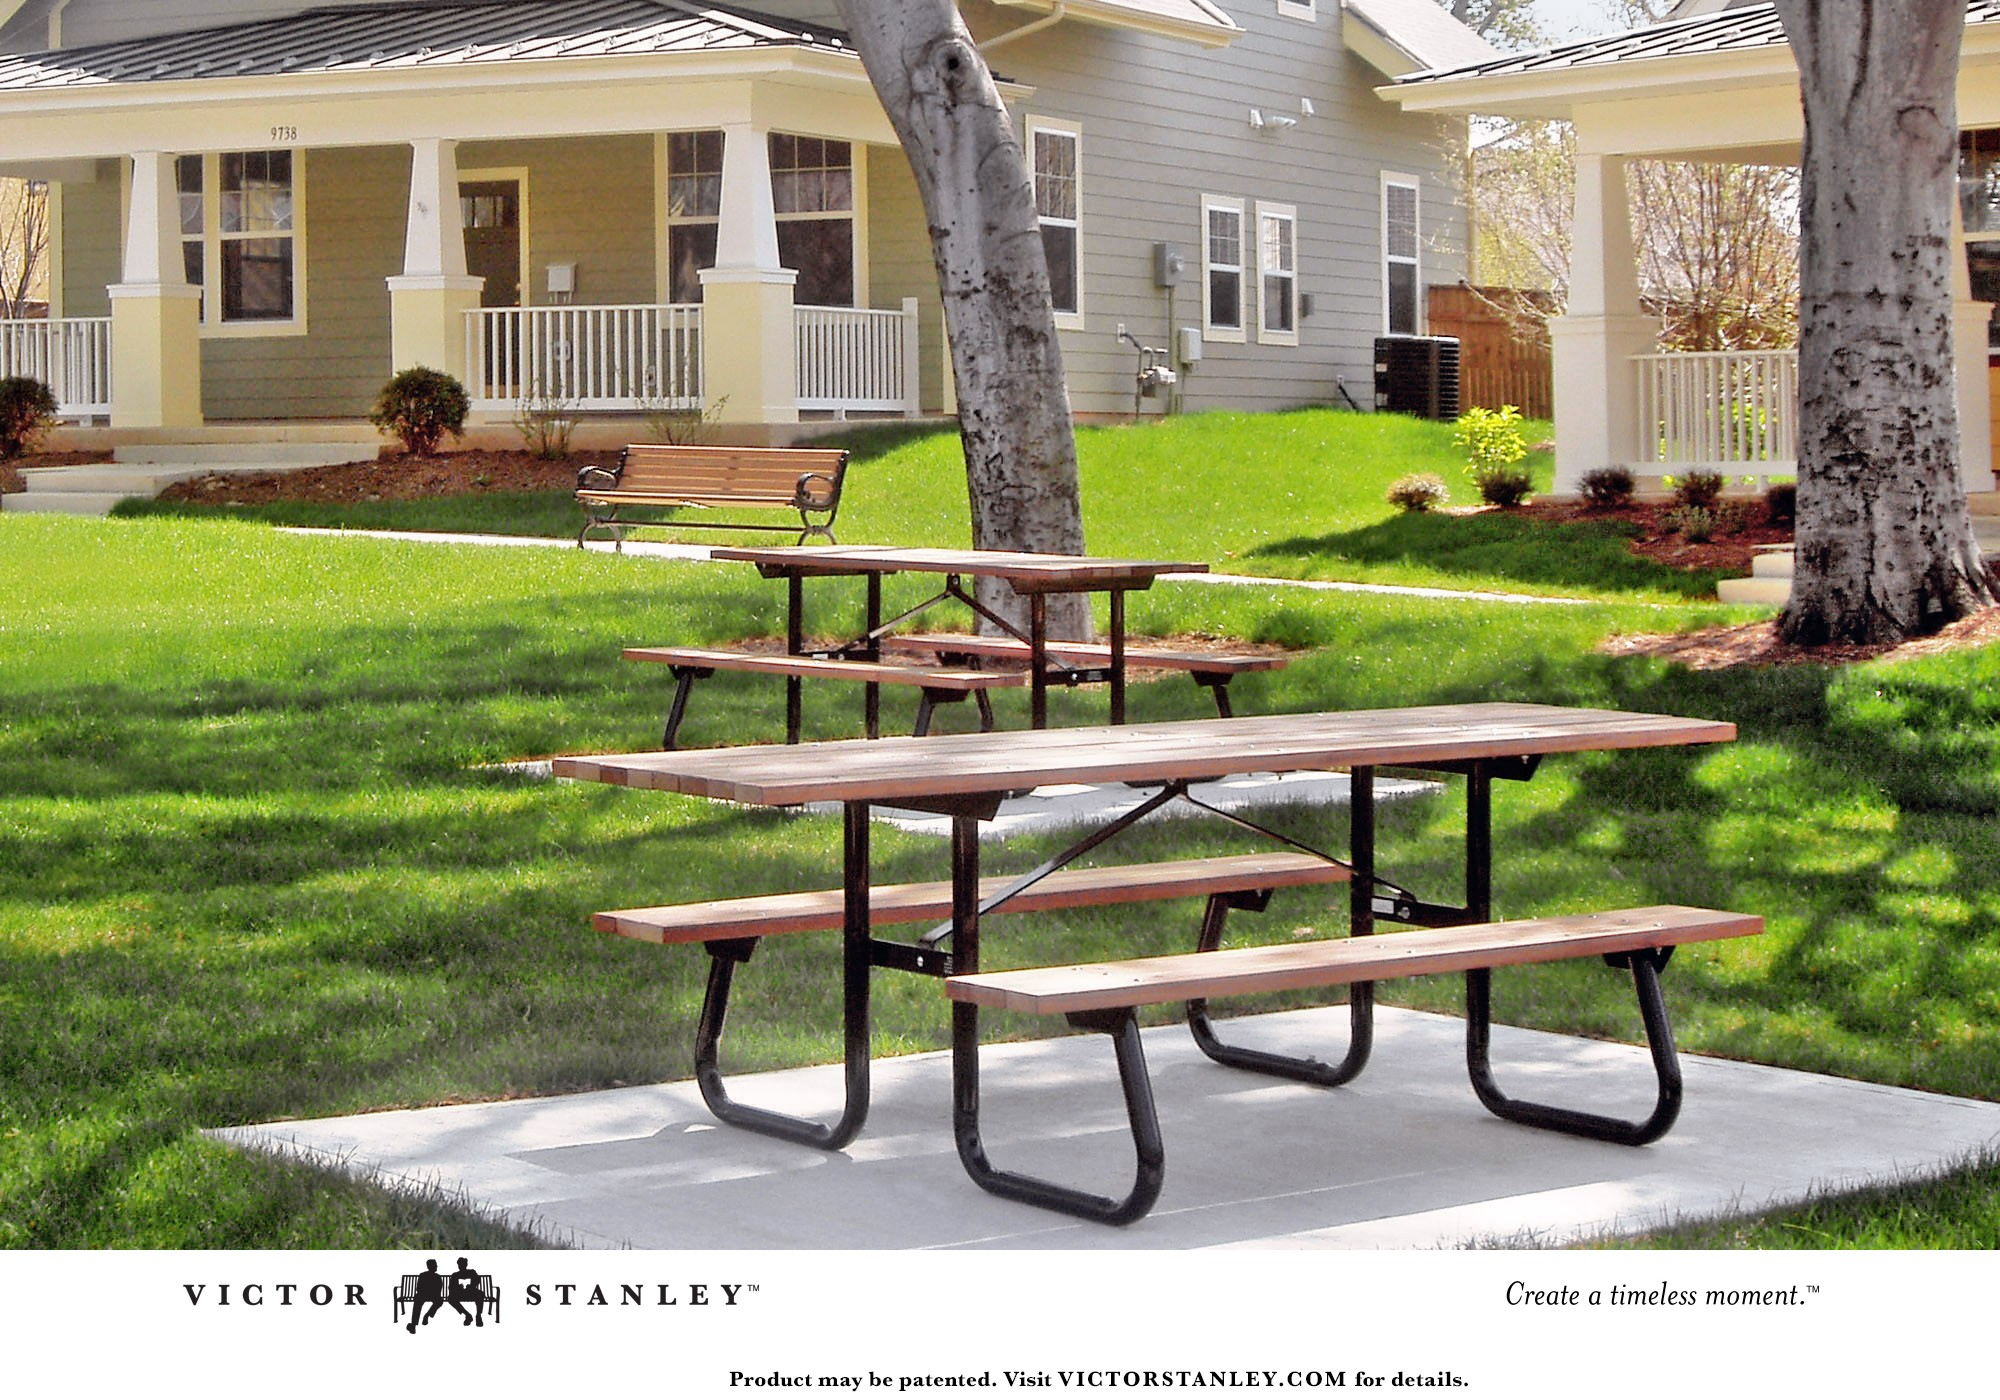 st 5 victor stanley site furniture